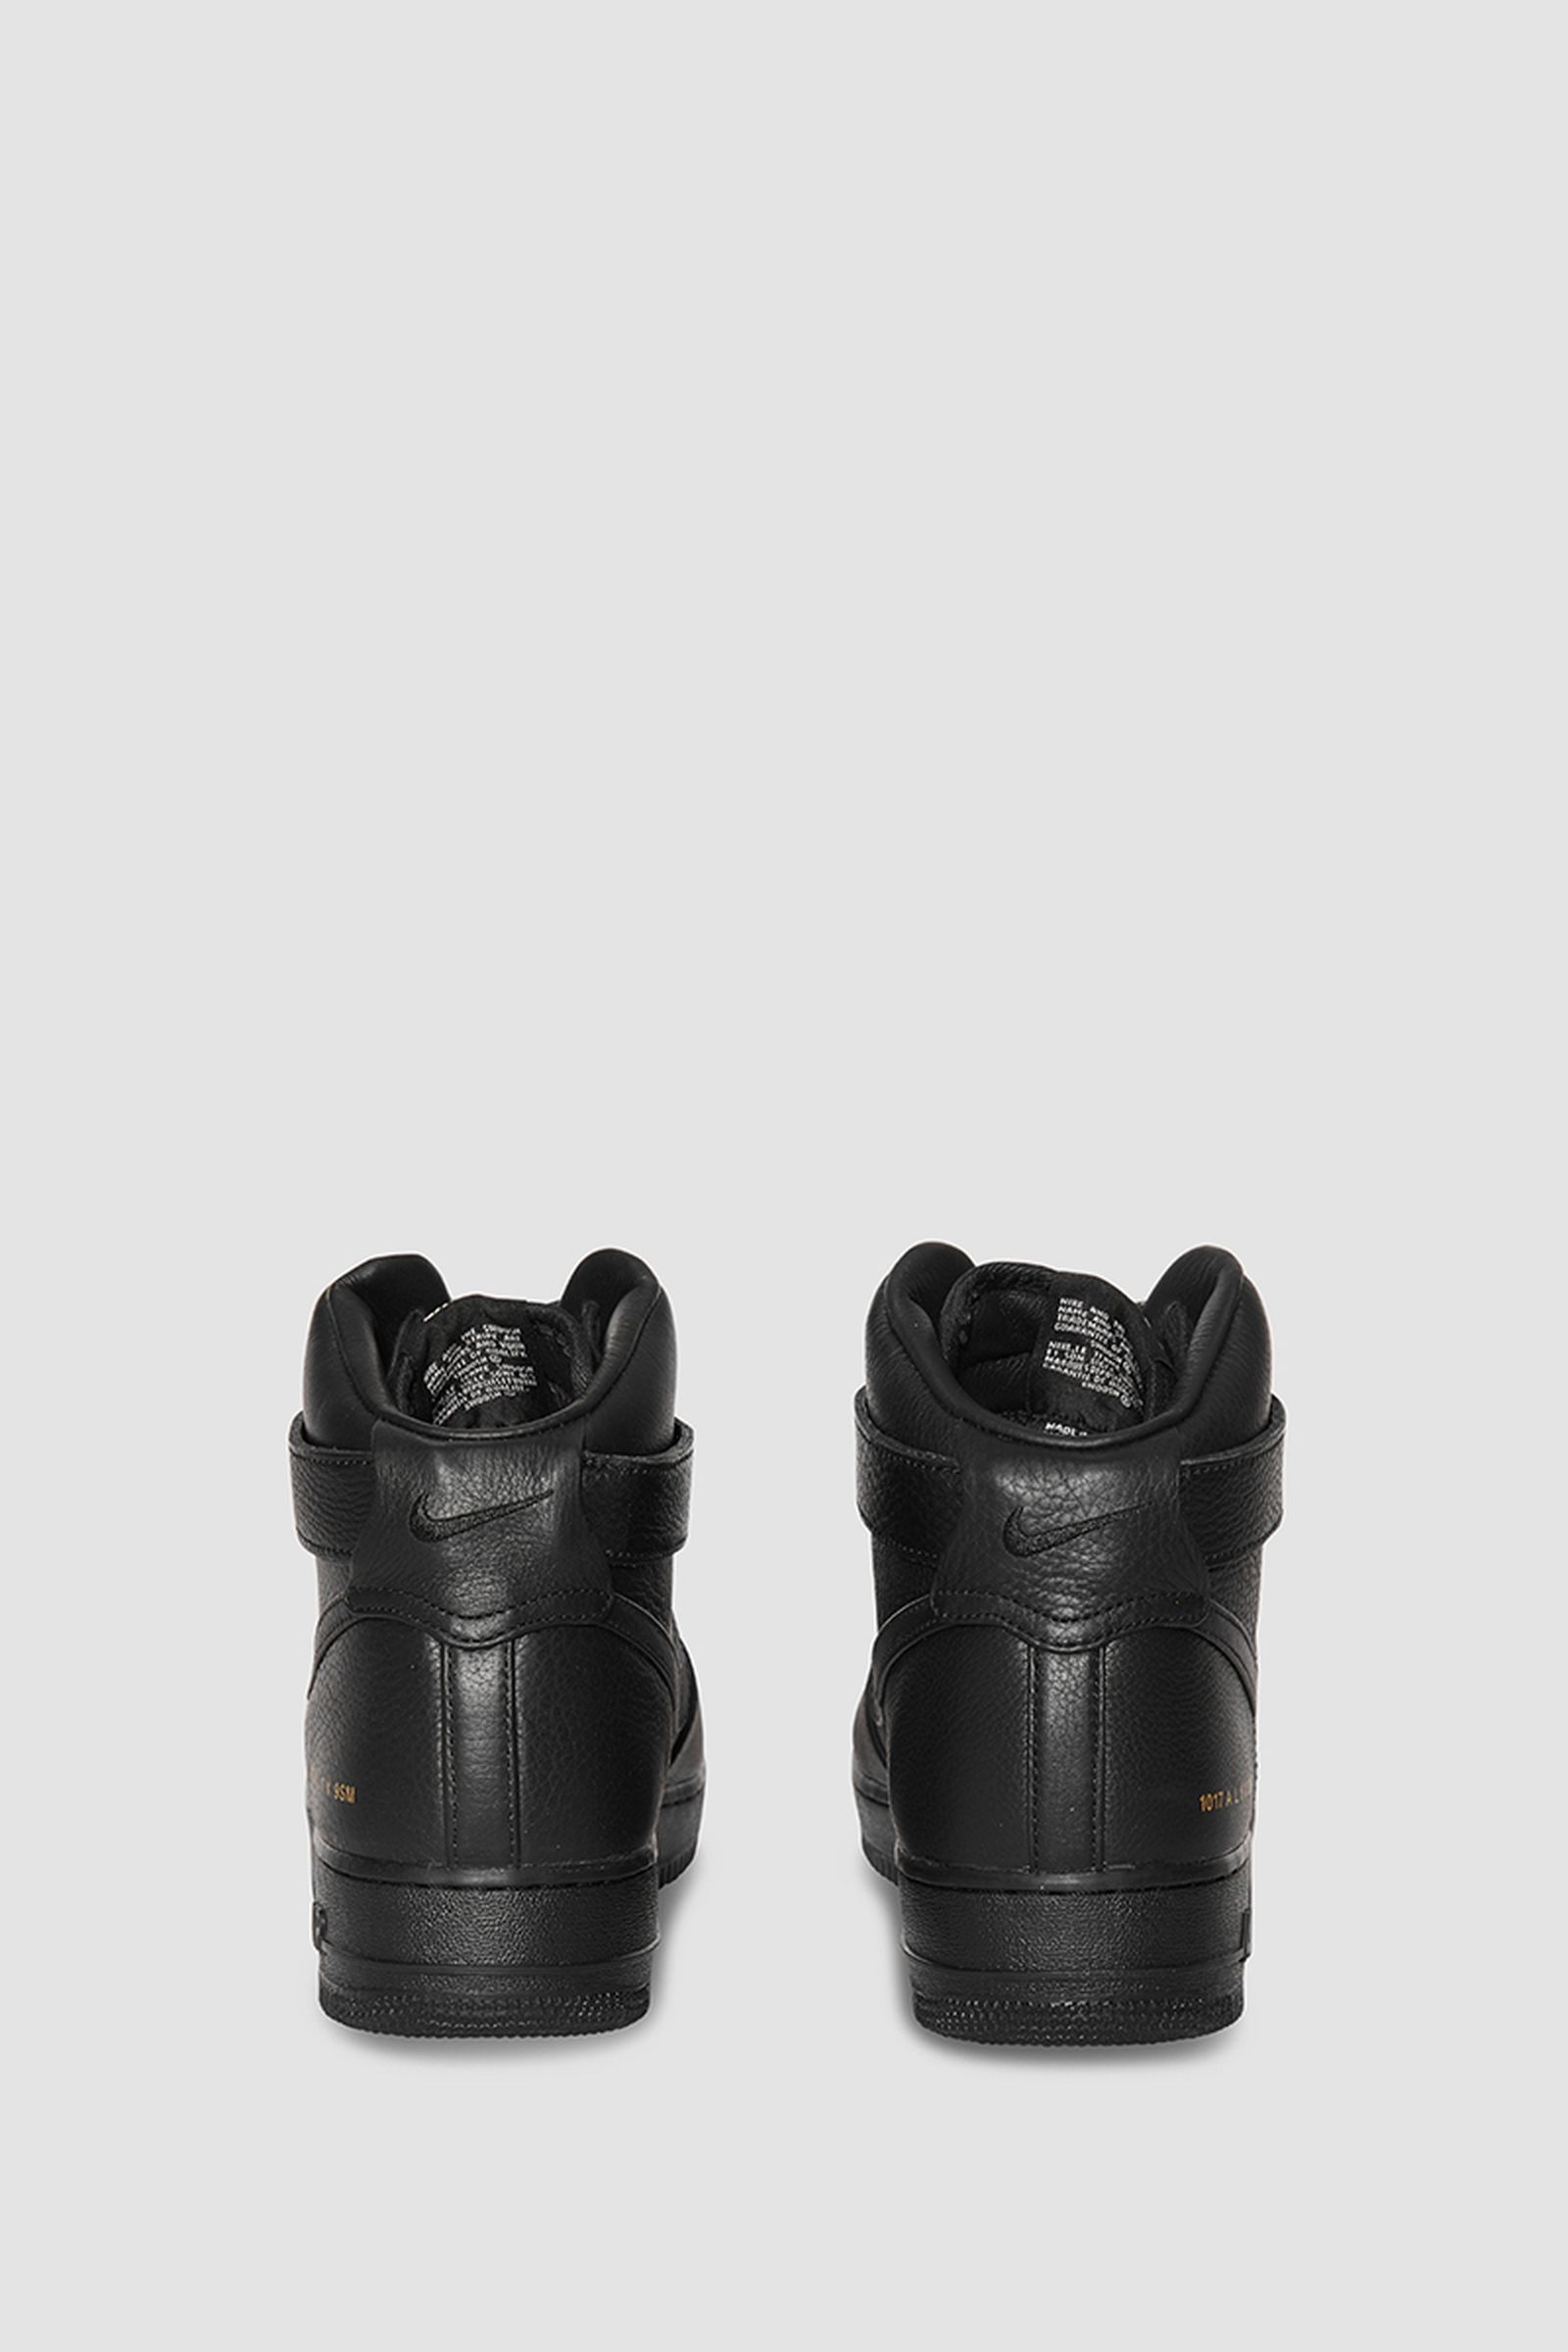 alyx-nike-air-force-1-high-release-date-price-11